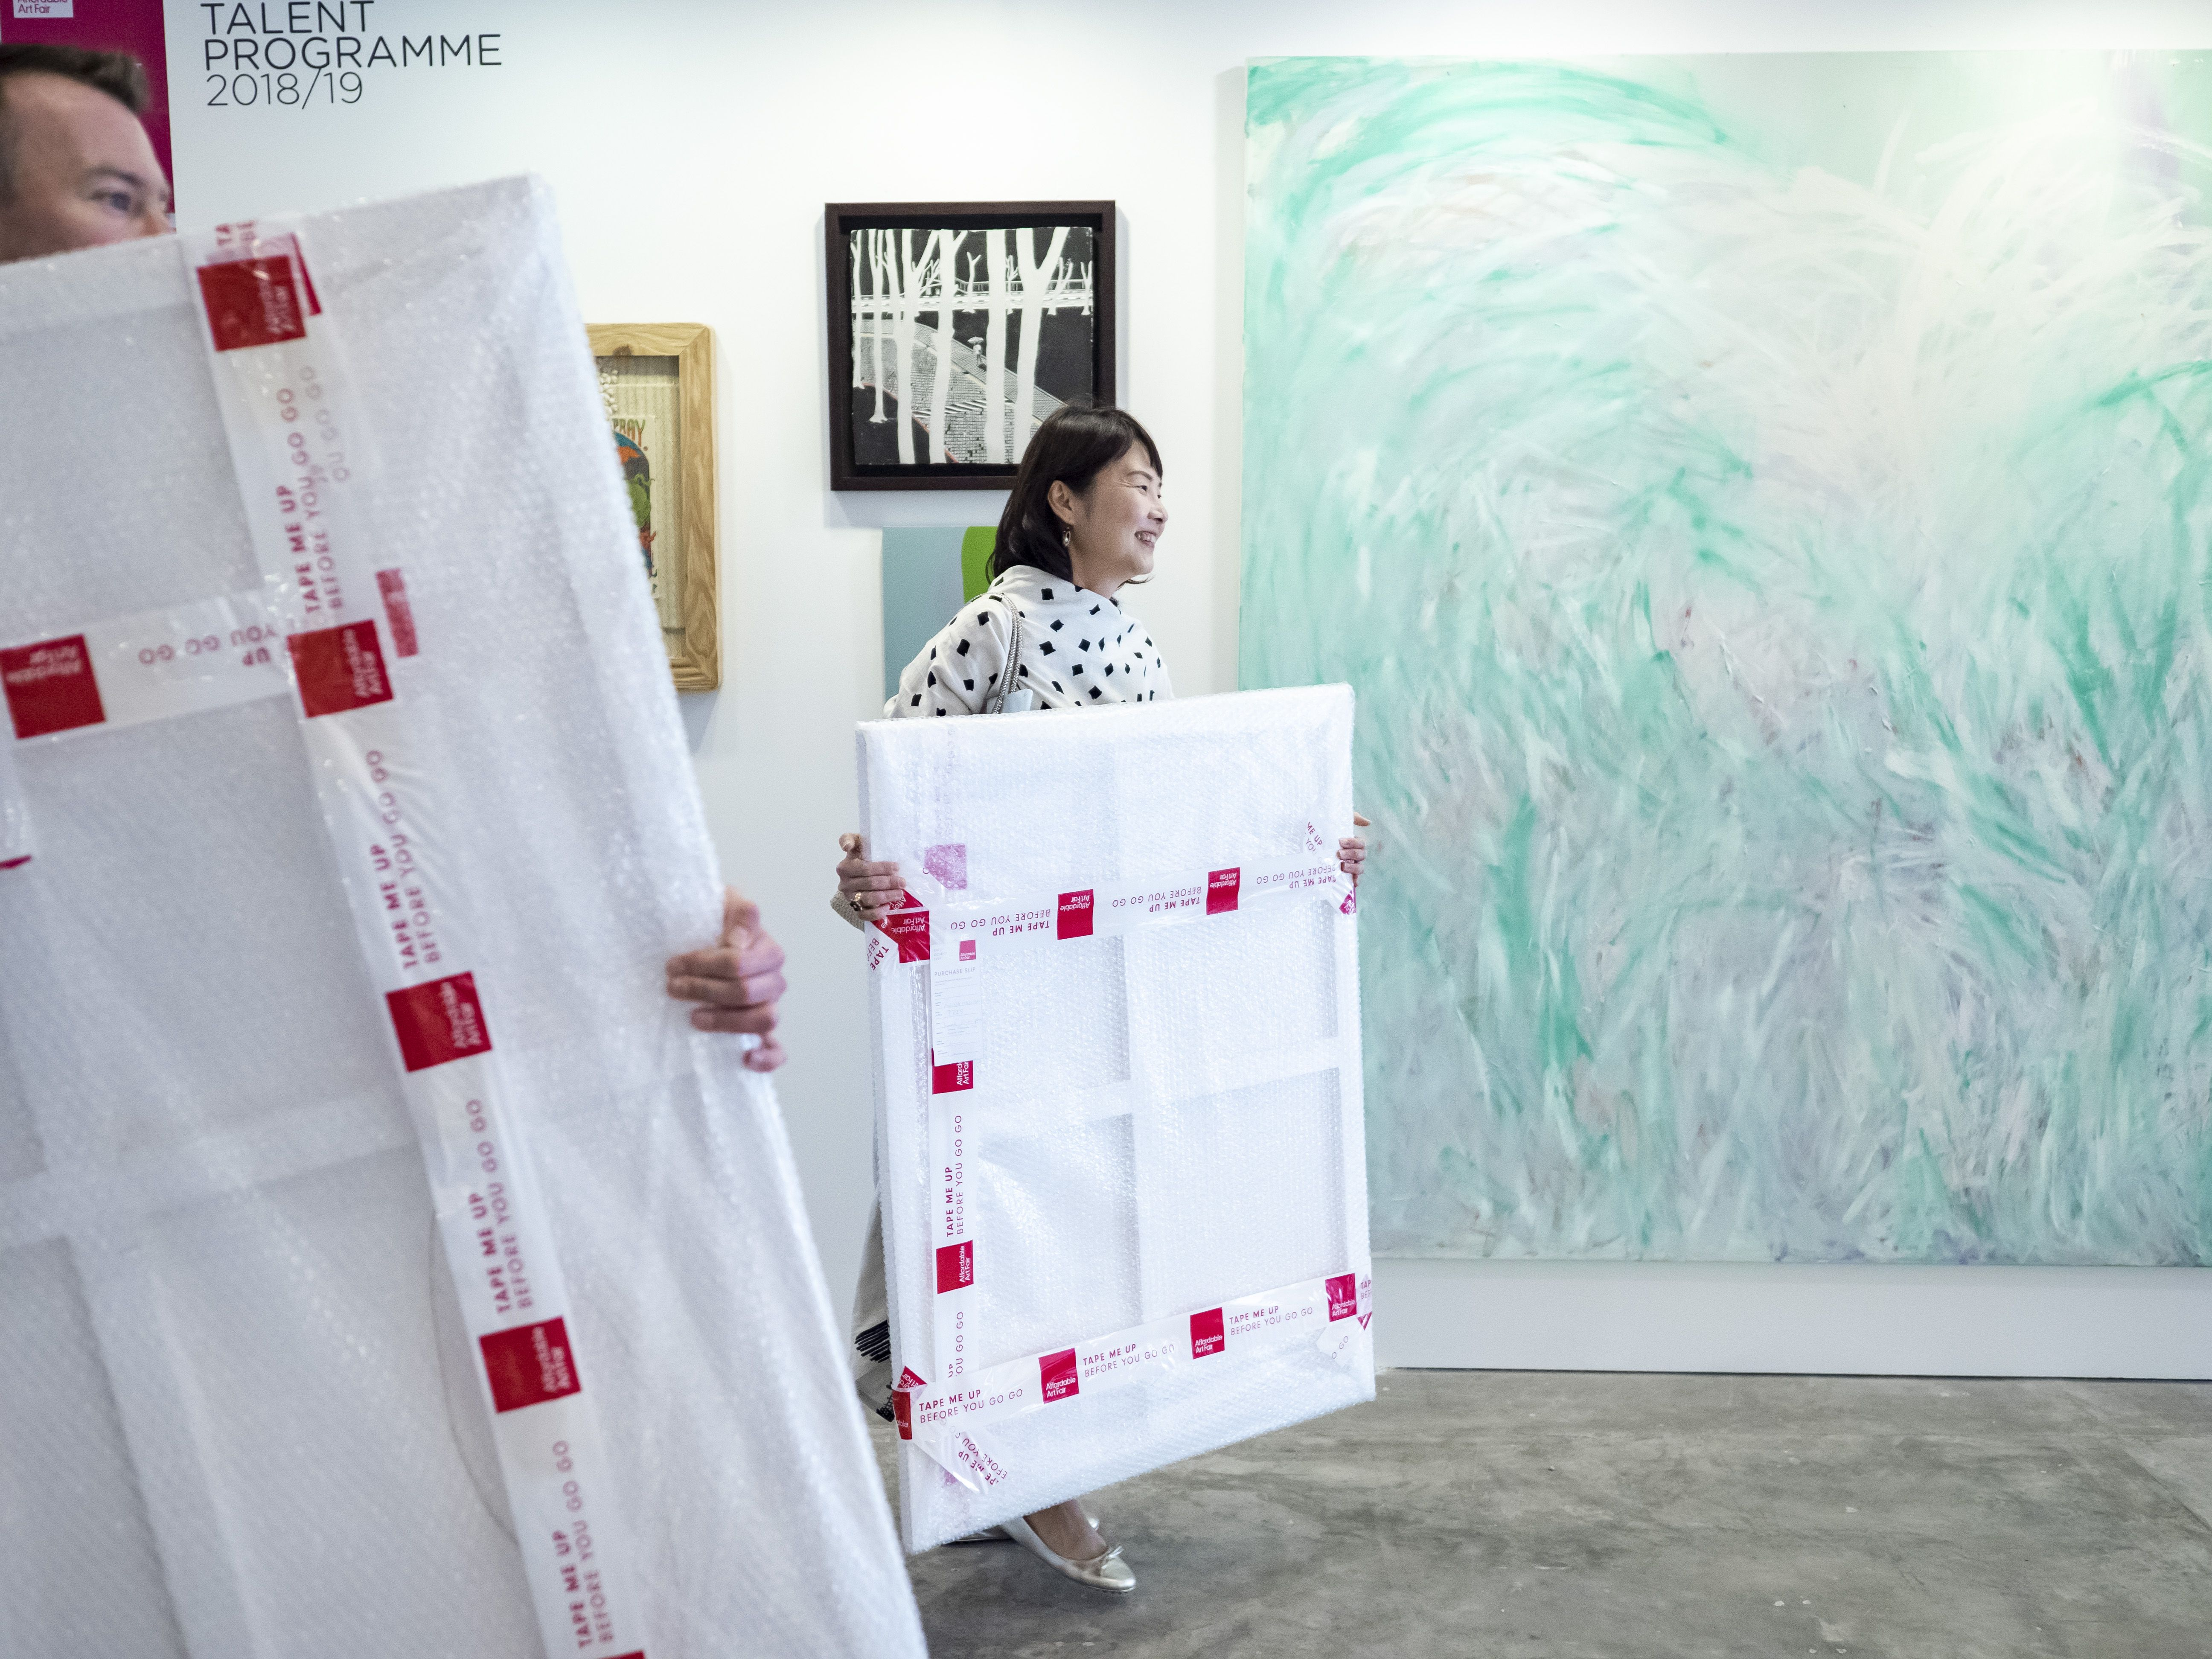 Affordable Art Fair Singapore 2018 Affordableartfair Affordableartfairsingapore Aafsingapore Bringyourhometolif Singapore Art Art Fair Affordable Art Fair